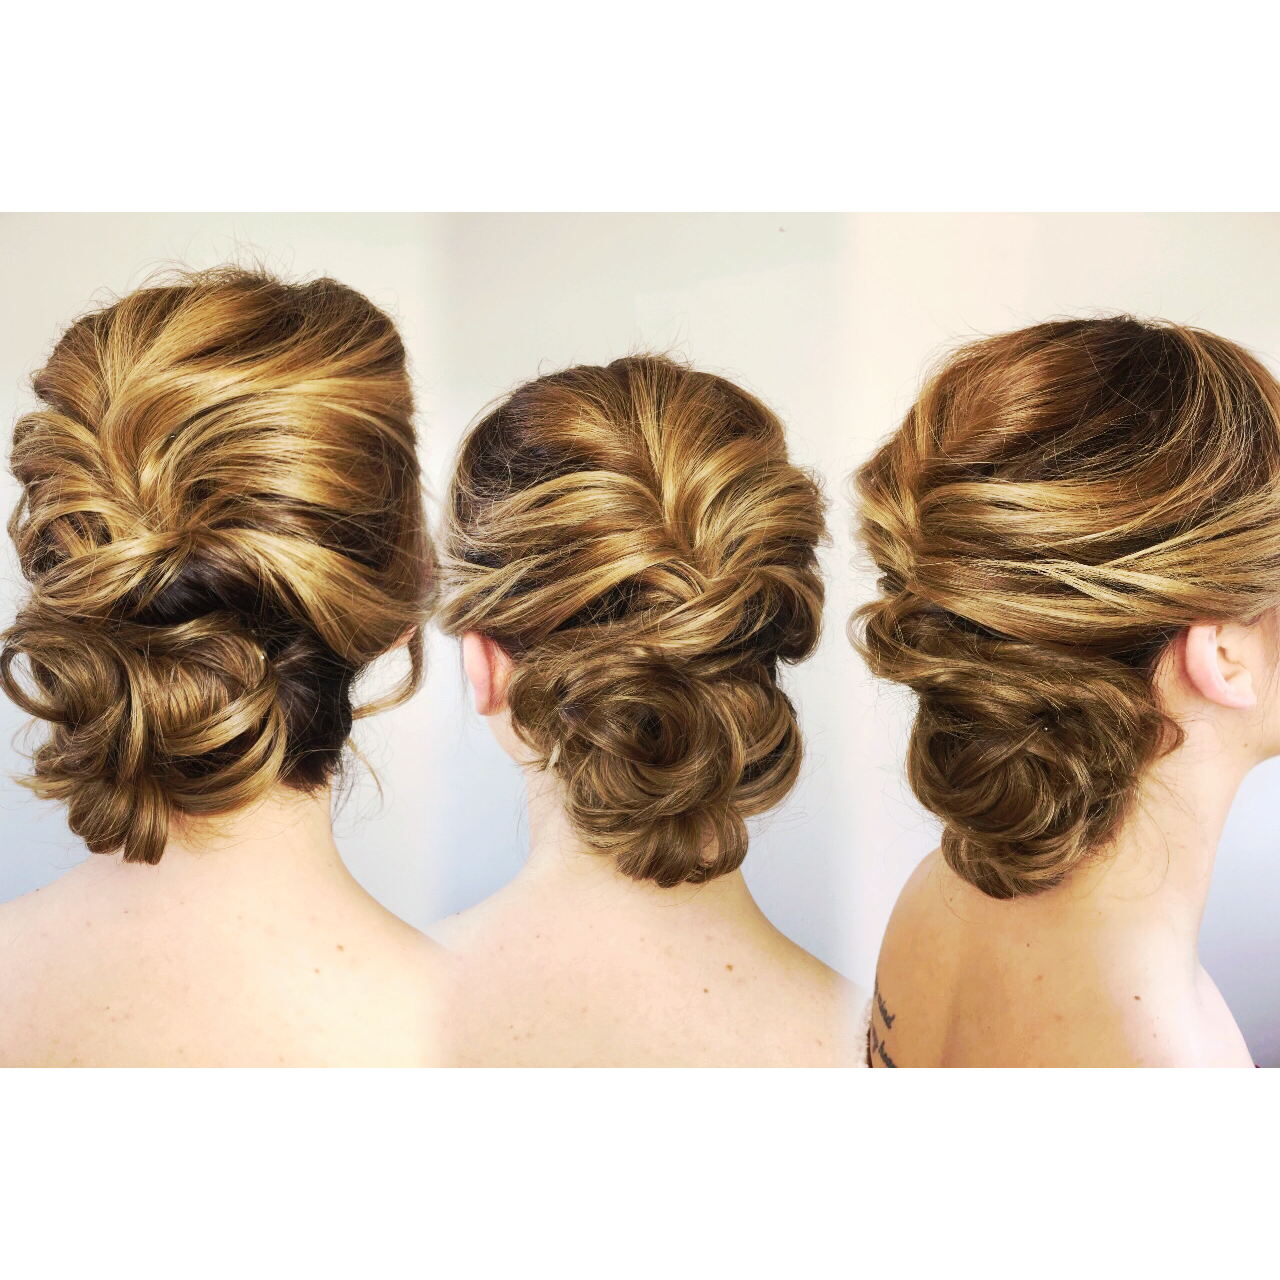 Three different dimensional upstyling looks showcasing balayage hair color and updo. Bridal up style bridesmaids bridesmaid bride wedding hair Spring Summer classic romantic modern soft whimsical ethereal beautiful gorgeous bronde chic hairstyle hairstyling Buffalo New York WNY East Amherst @hairreformation for more copper strawberry blonde bronde golden gold dark blonde warm colormelt hair love inspo inspiration wedding look 2017